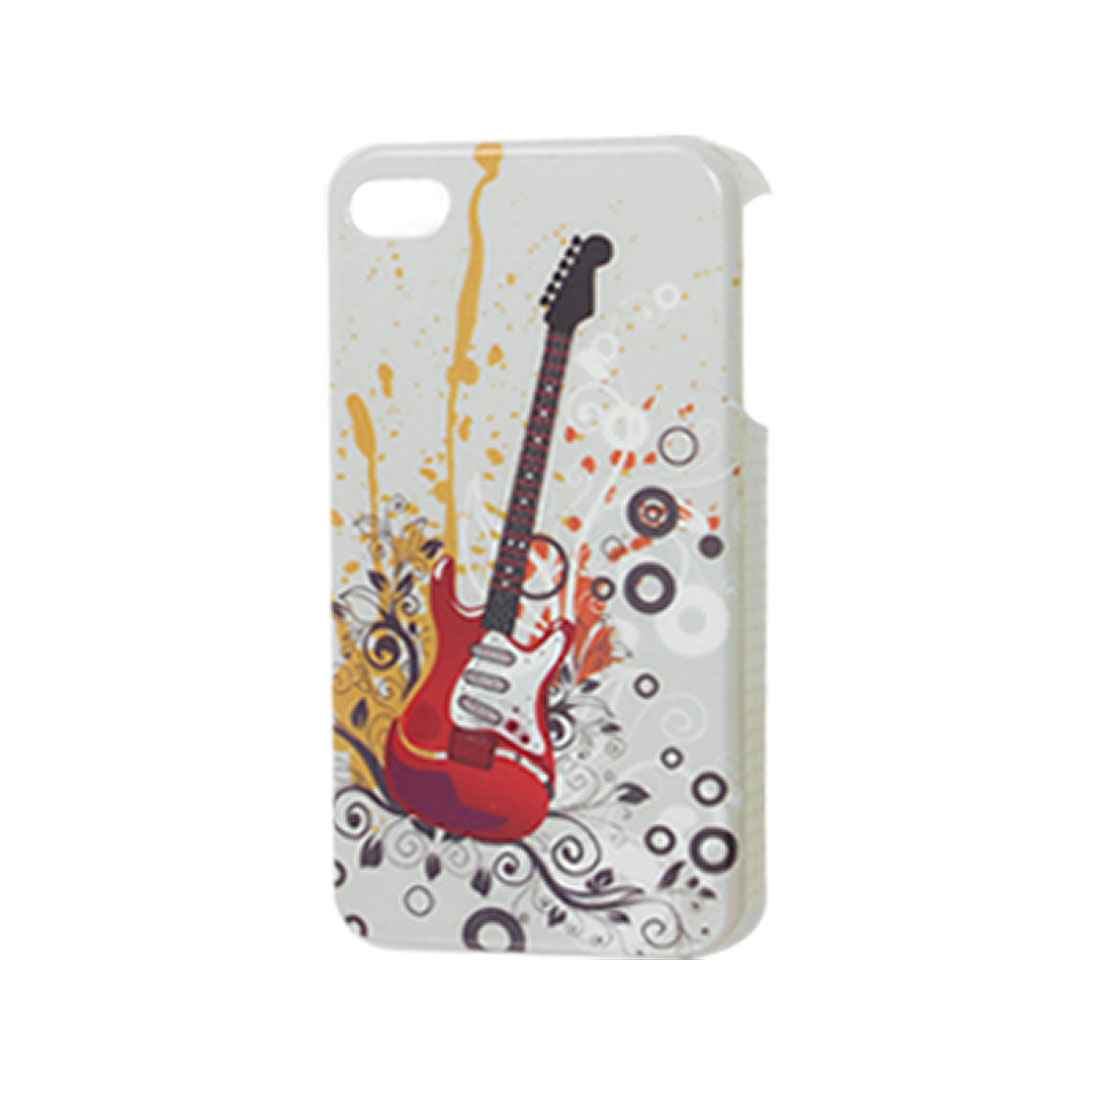 Red Guitar Hard Plastic IMD Back Guard Protector for iPhone 4 4G 4S